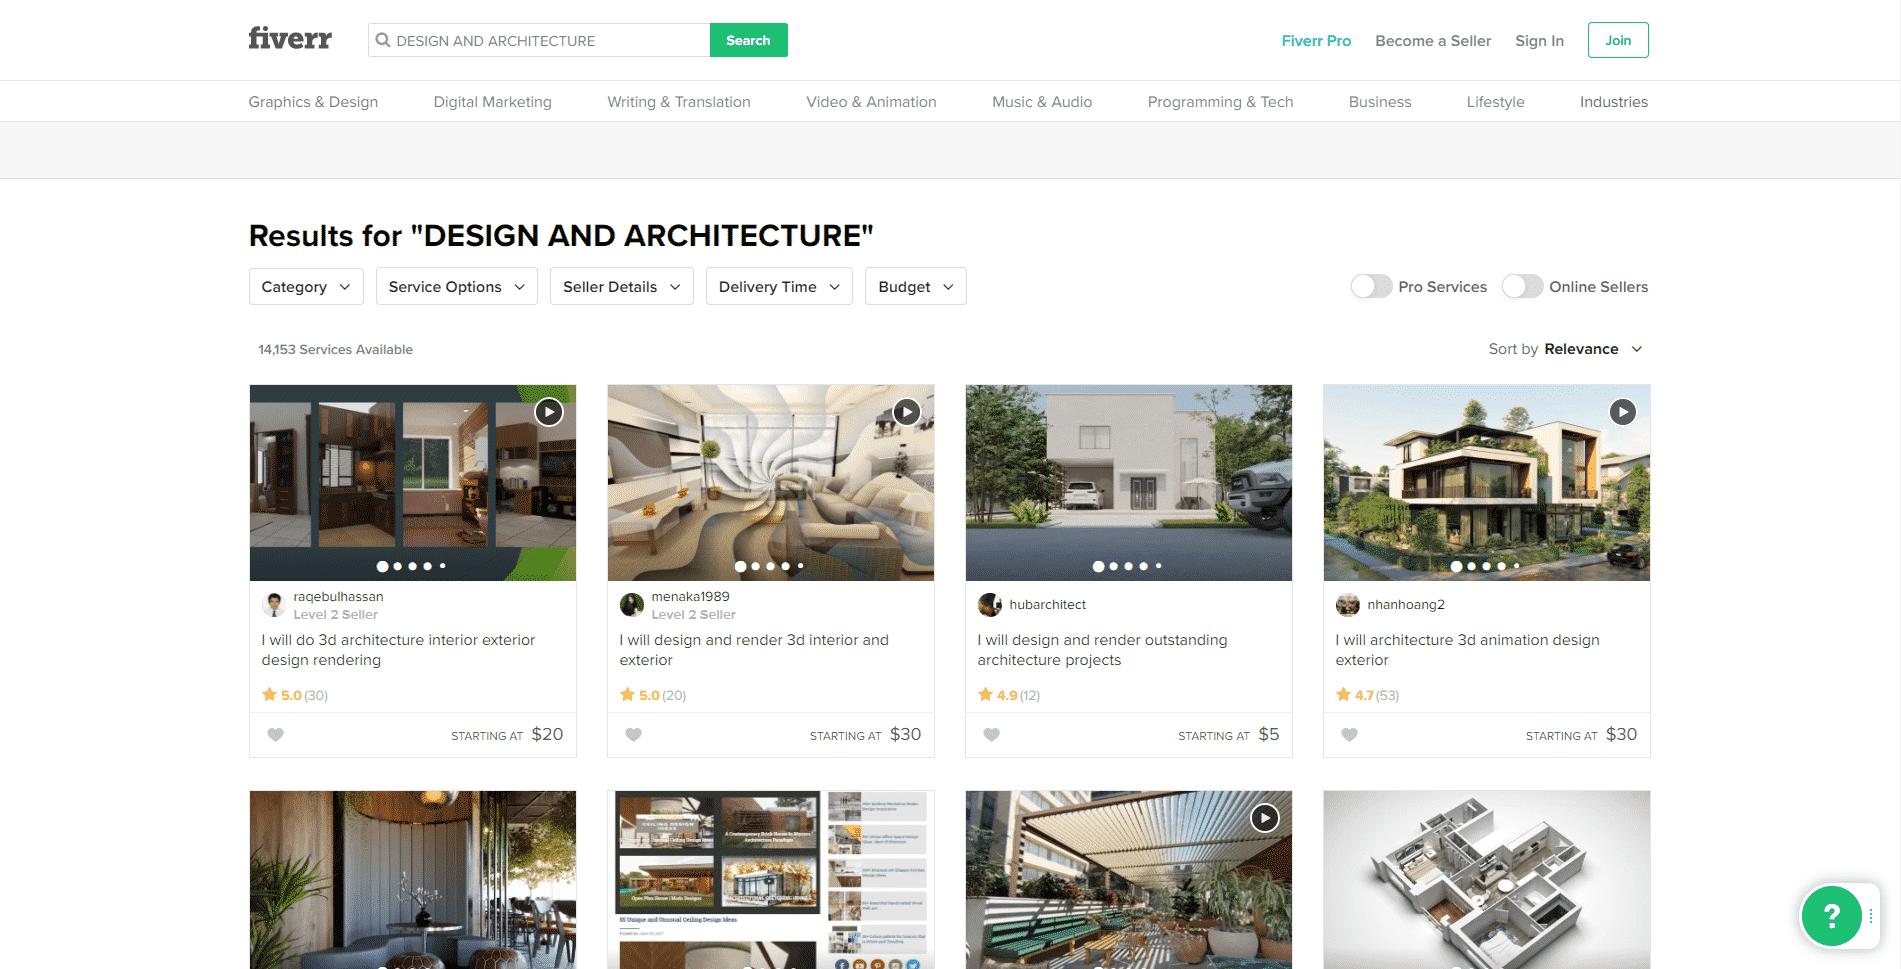 Fiverr.com Learn Design and Architecture Lessons Online